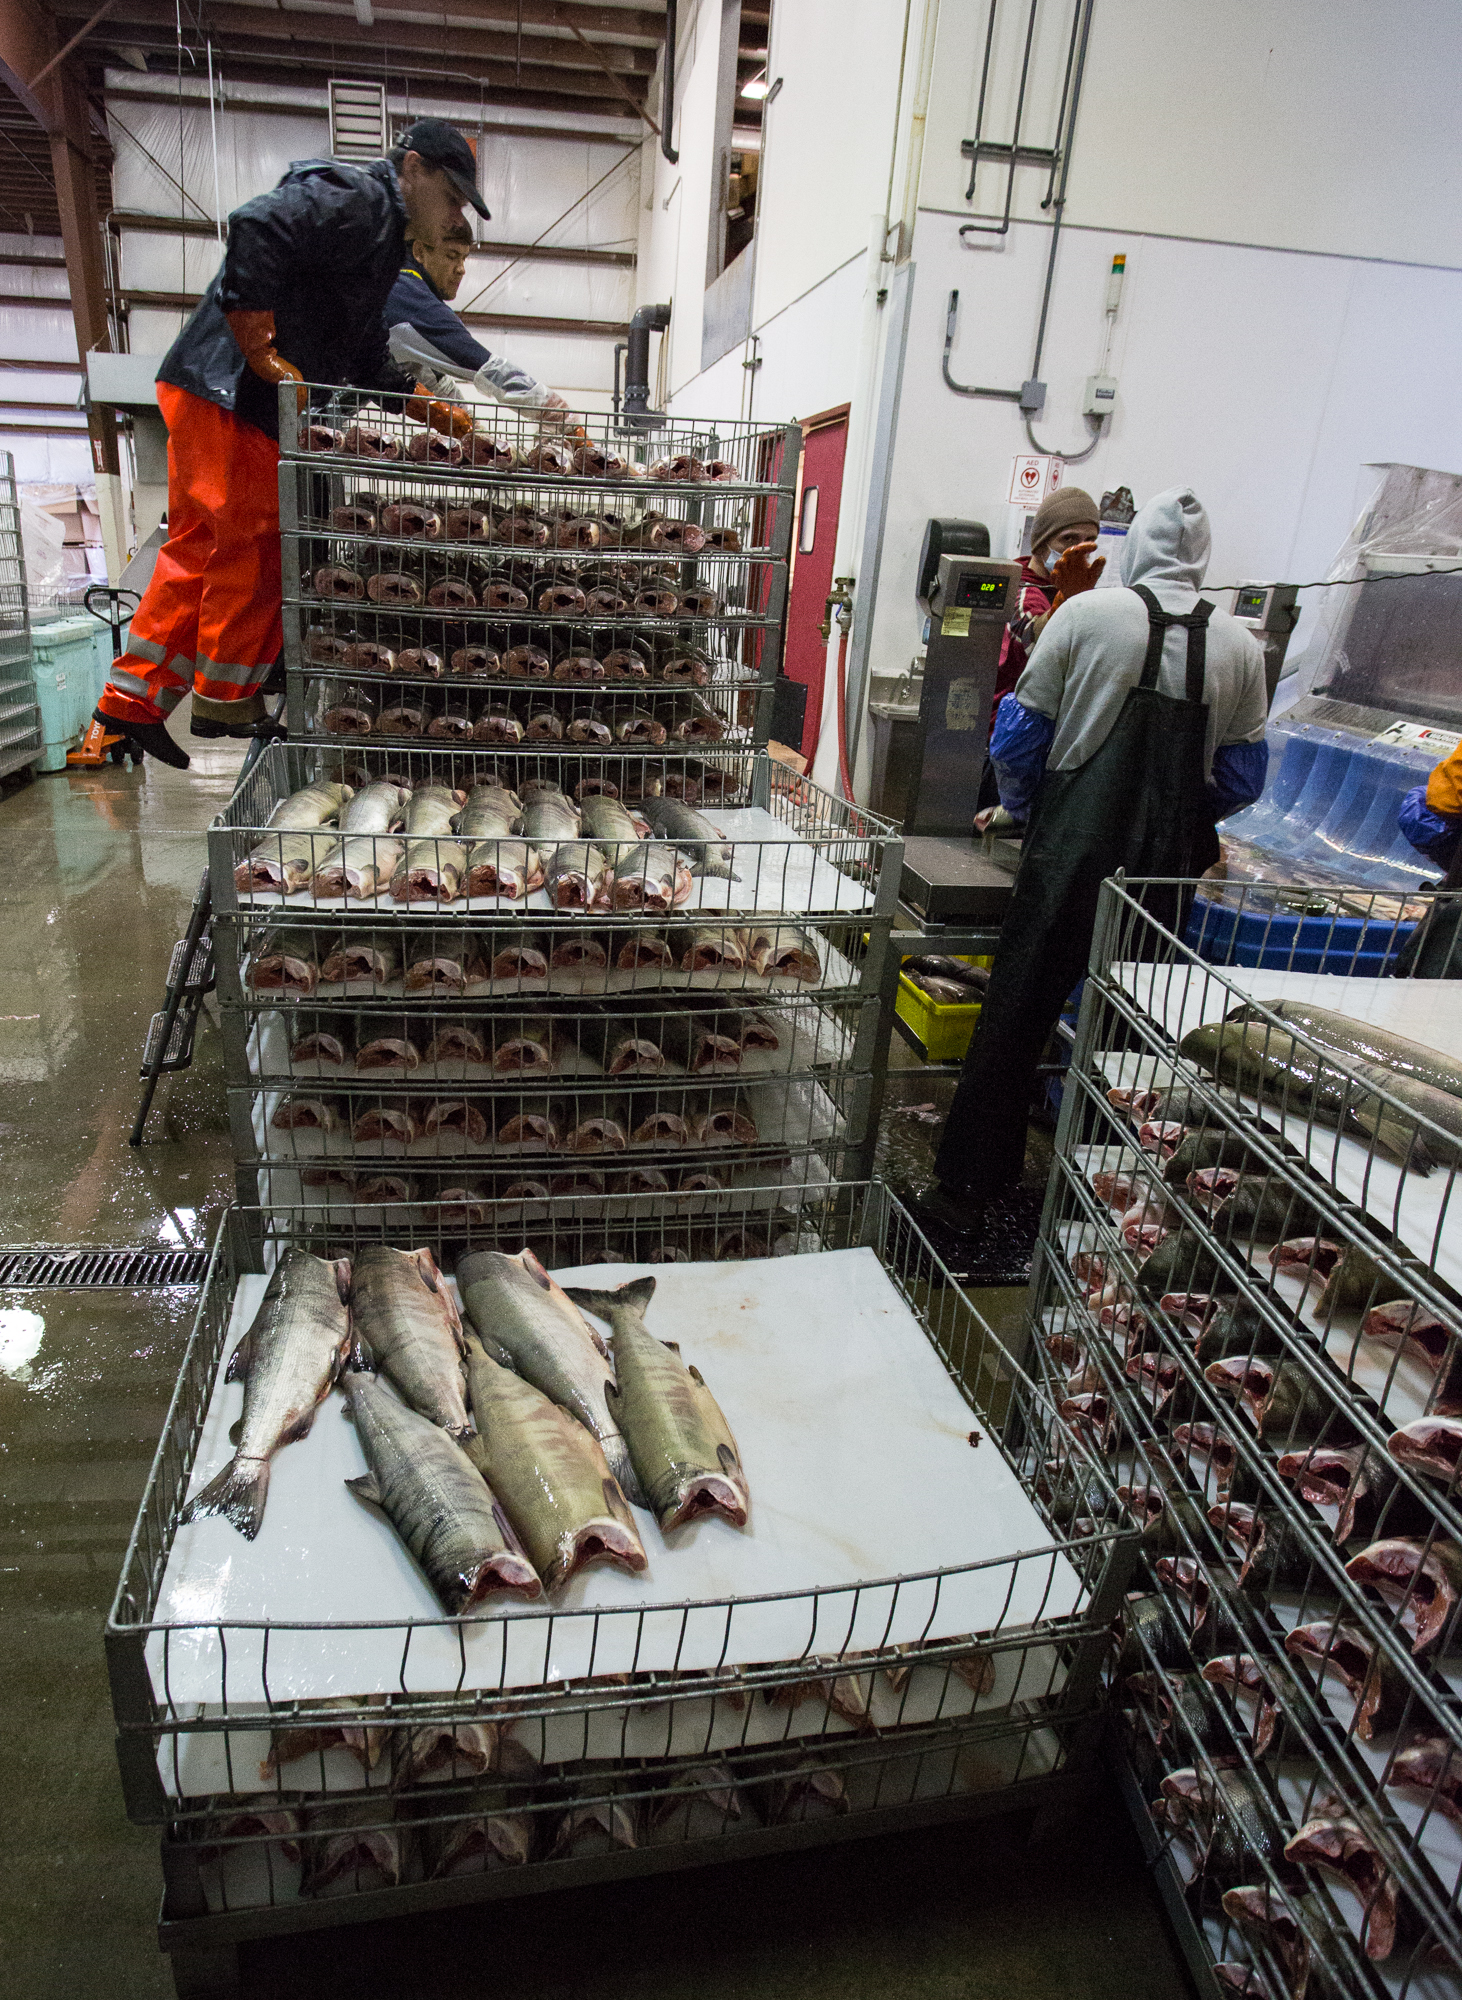 "(4/4) Dotting the shorelines of Alaska's southeast are numerous seafood processing facilities, like this one, where catches are delivered daily and quickly processed, packaged and shipped for sale. Here, processors work through a haul of chum salmon, which will be sold commercially as ""keta"" or ""silverbrite"" salmon (photo: Chad Shmukler)."